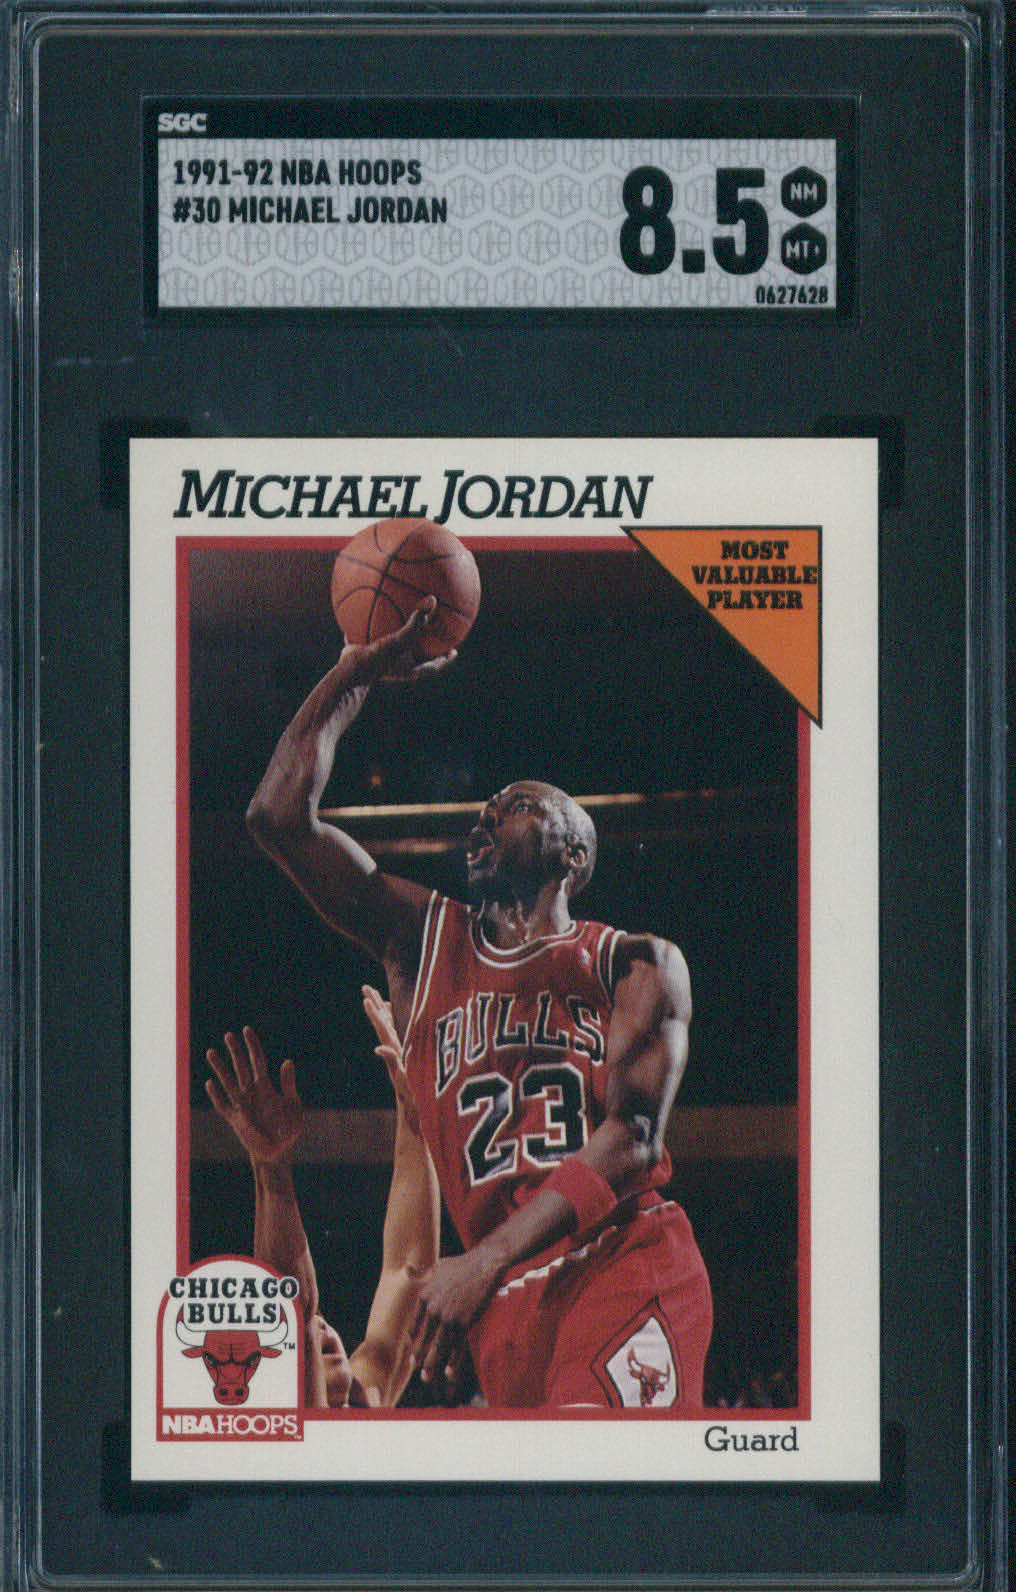 1991 NBA Hoops #30 Michael Jordan SGC 8.5